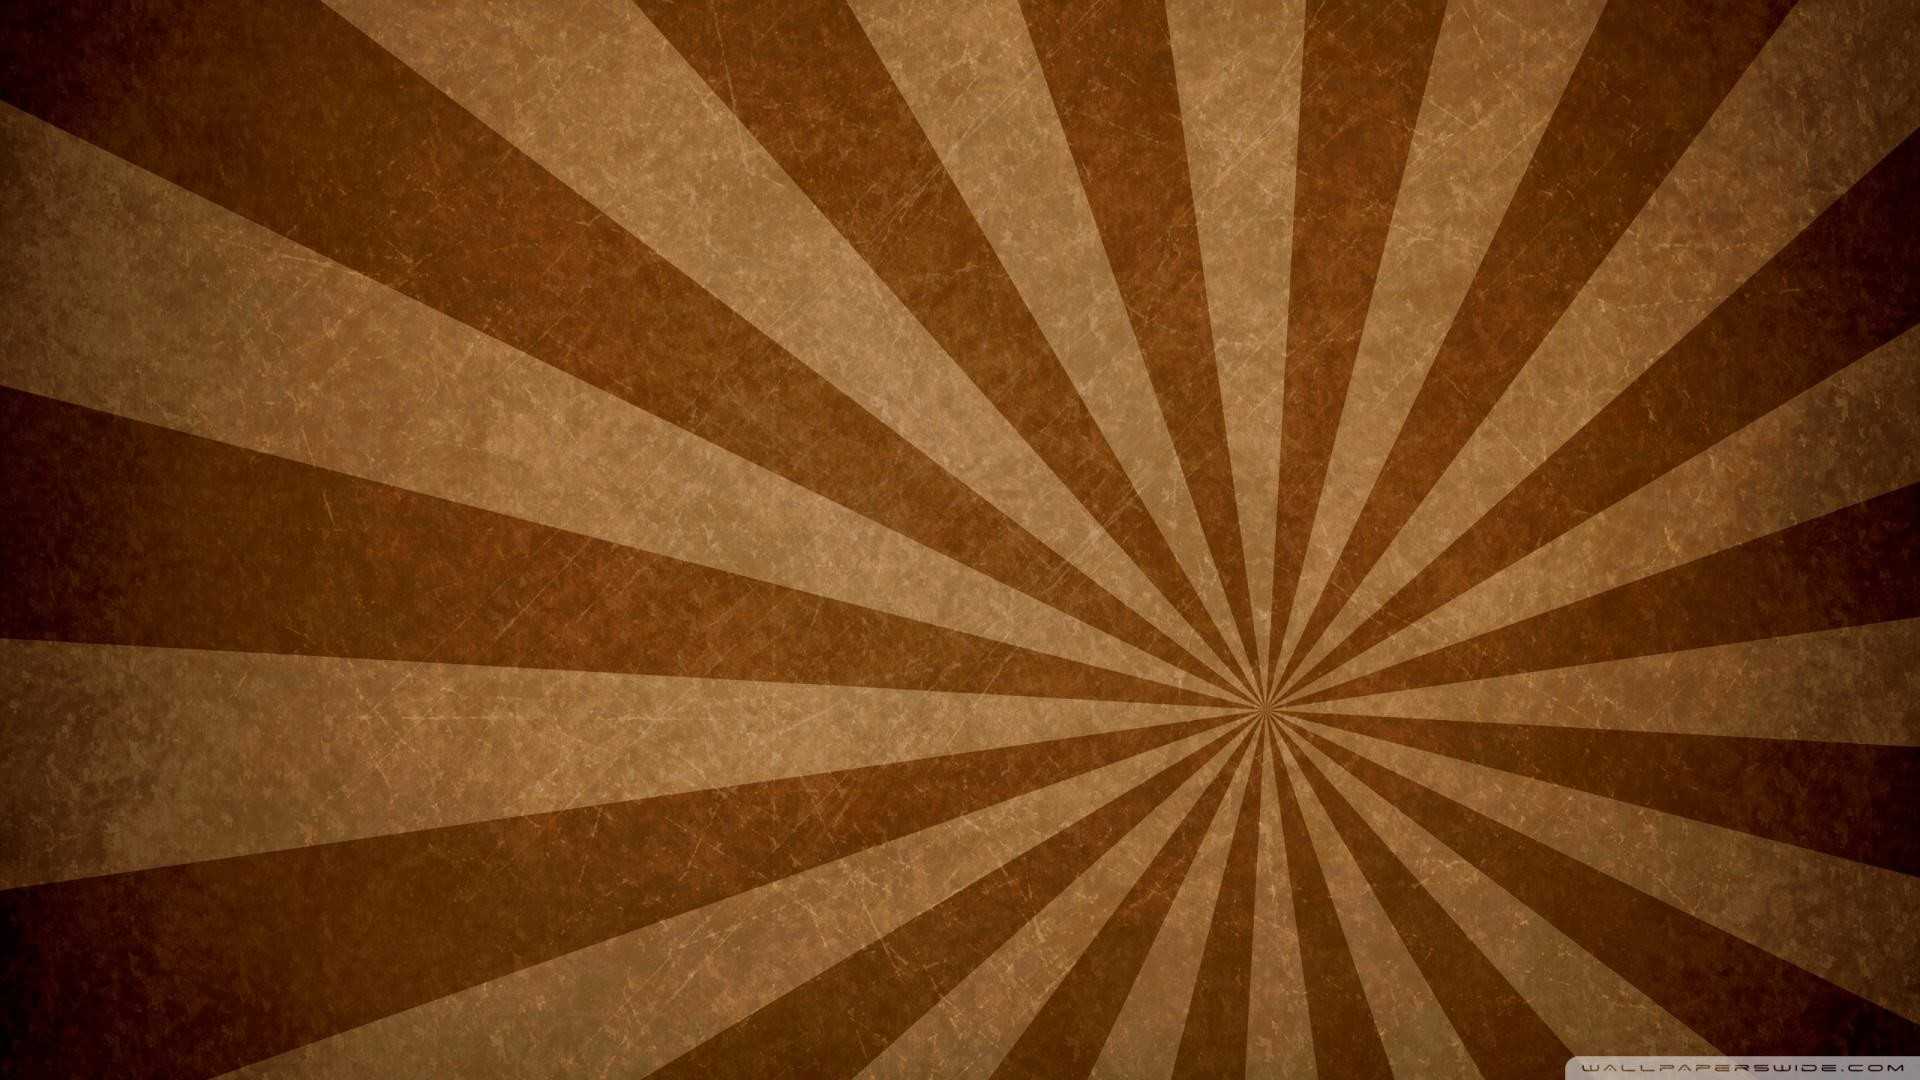 Brown Wallpaper Background 65 images 1920x1080